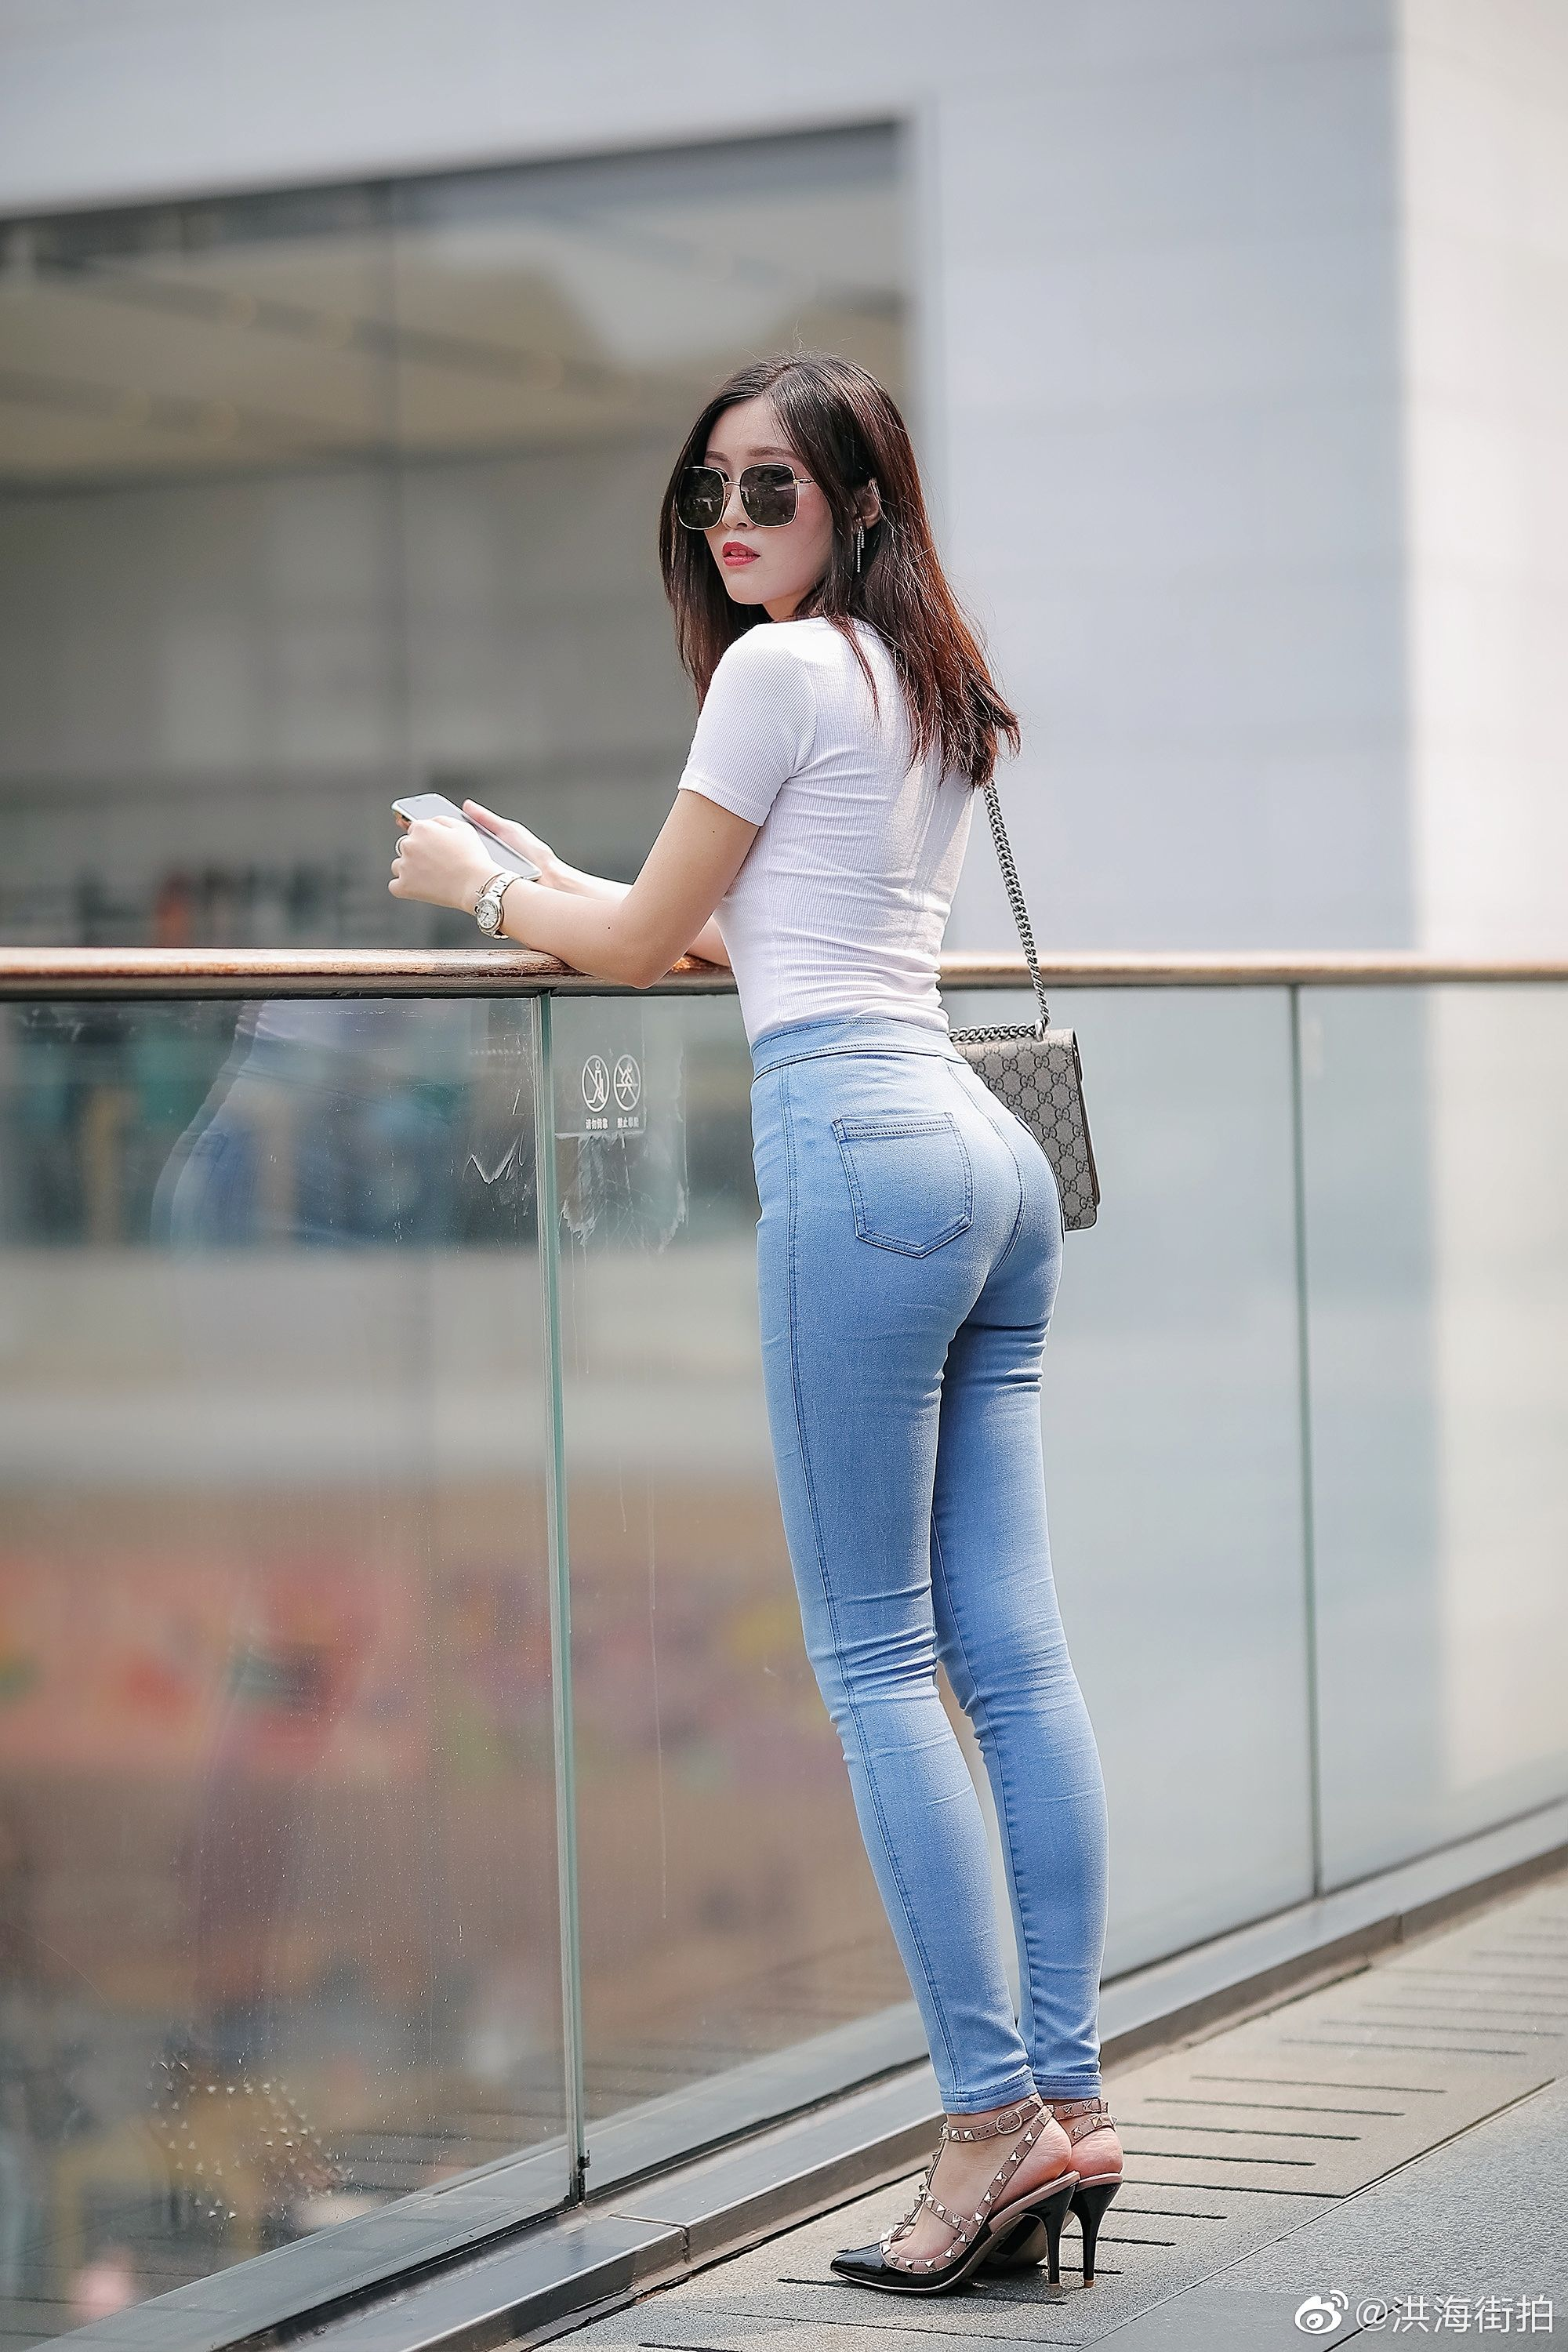 Watching cheating outdoor asian